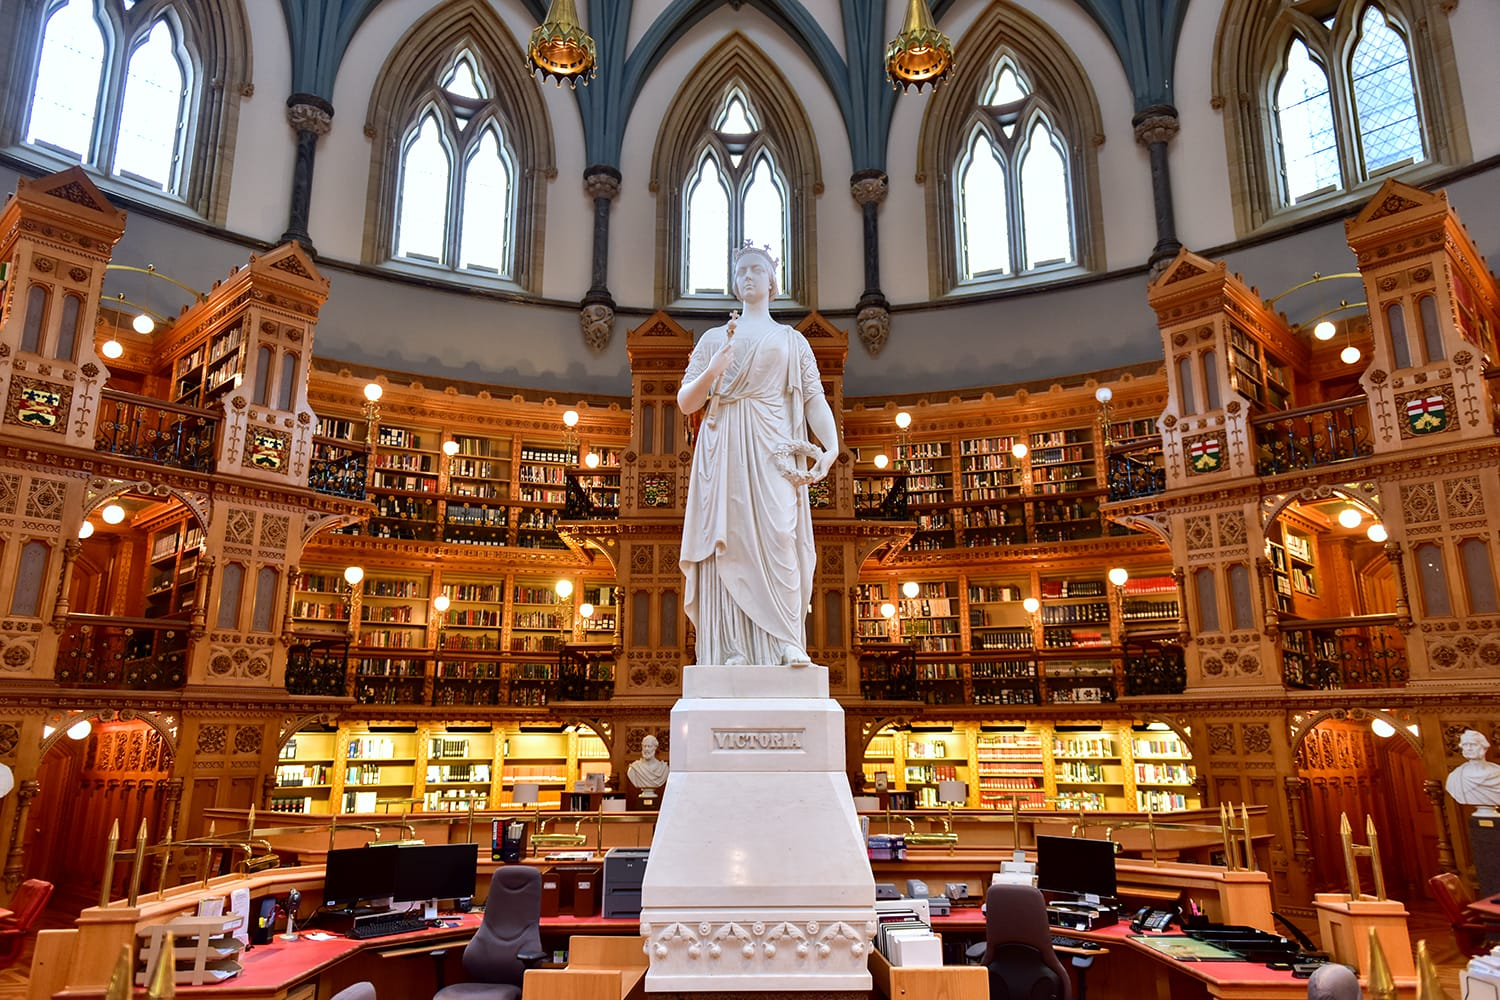 Queen Victoria in the Main Reading Room of the Library of Parliament on Parliament Hill in Ottawa, Ontario.